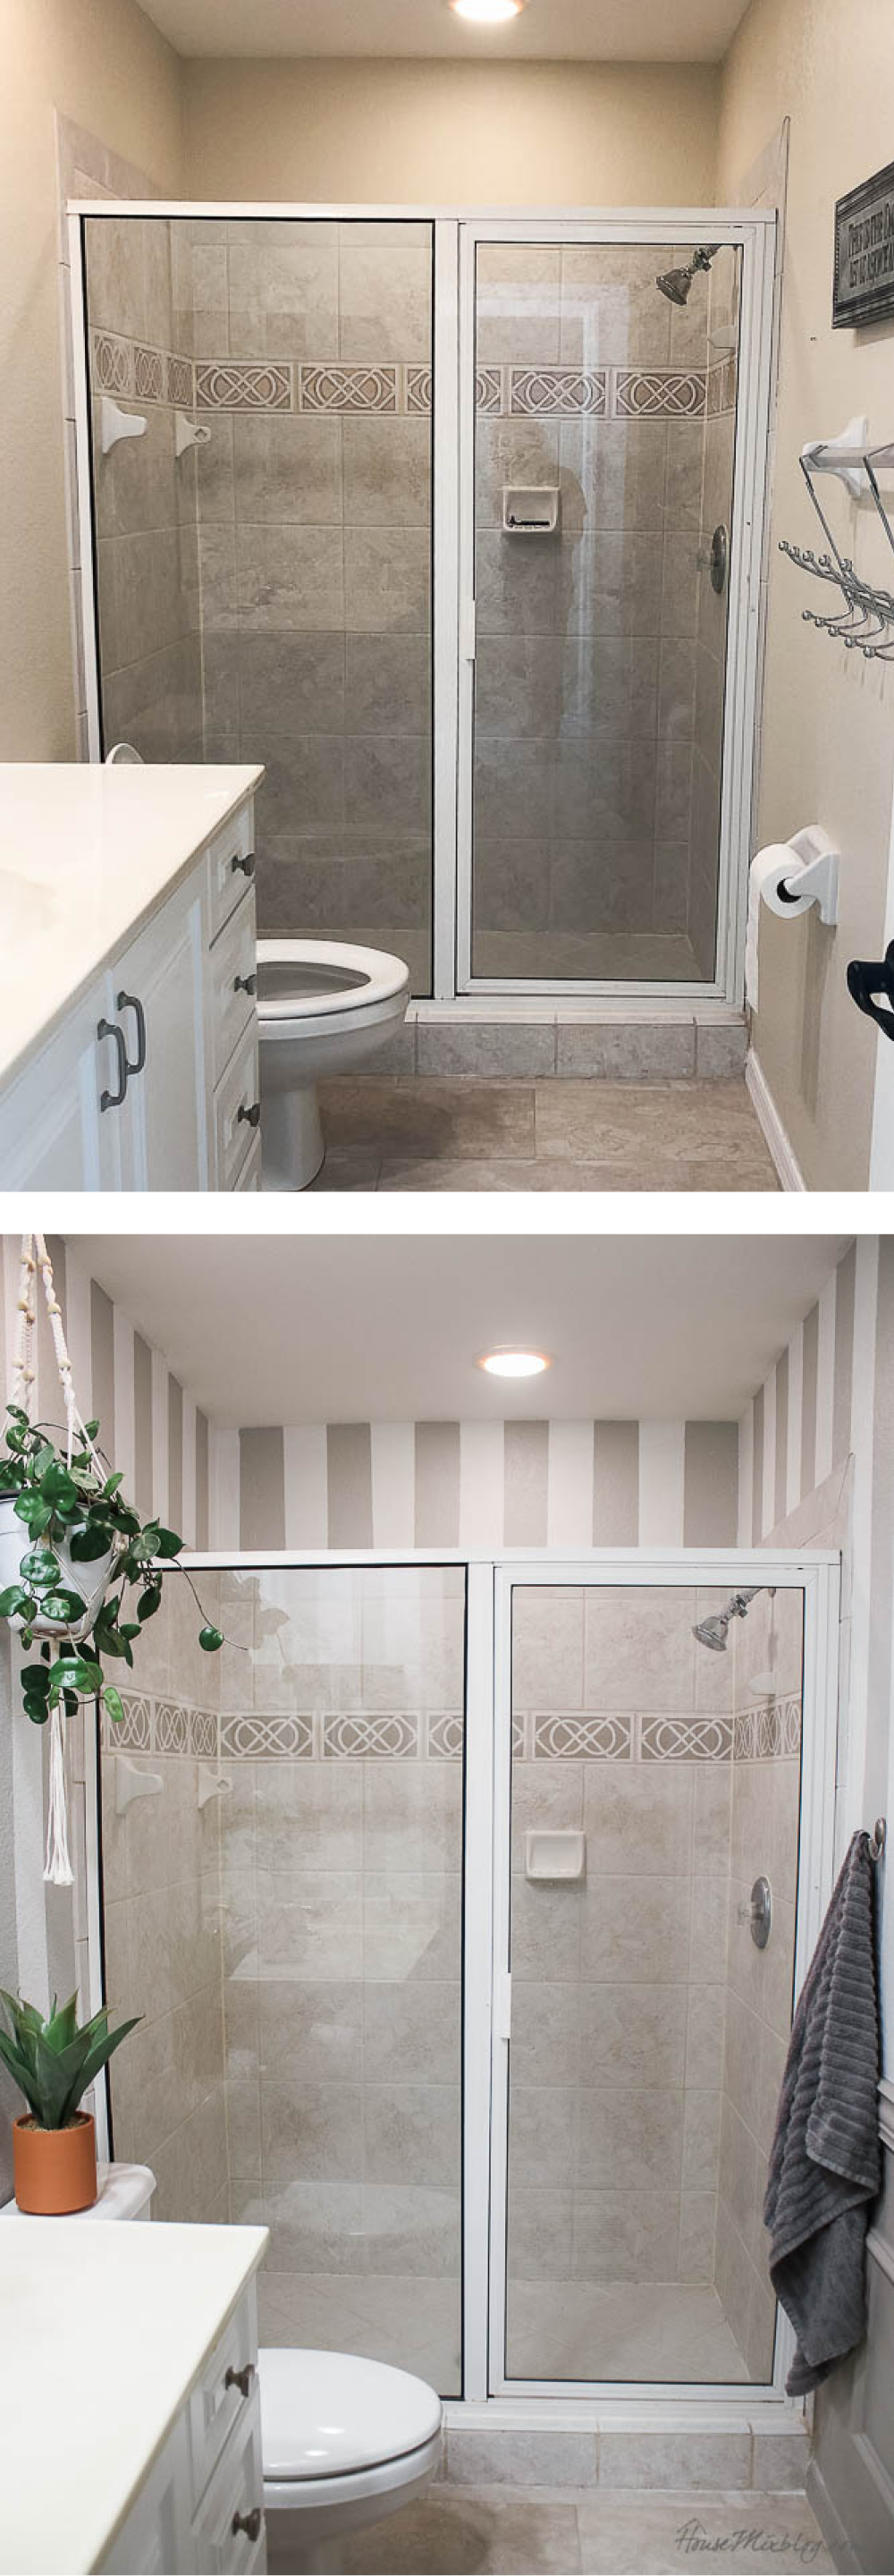 Before and after: Bathroom makeover with stripes, wainscoting and lots of paint